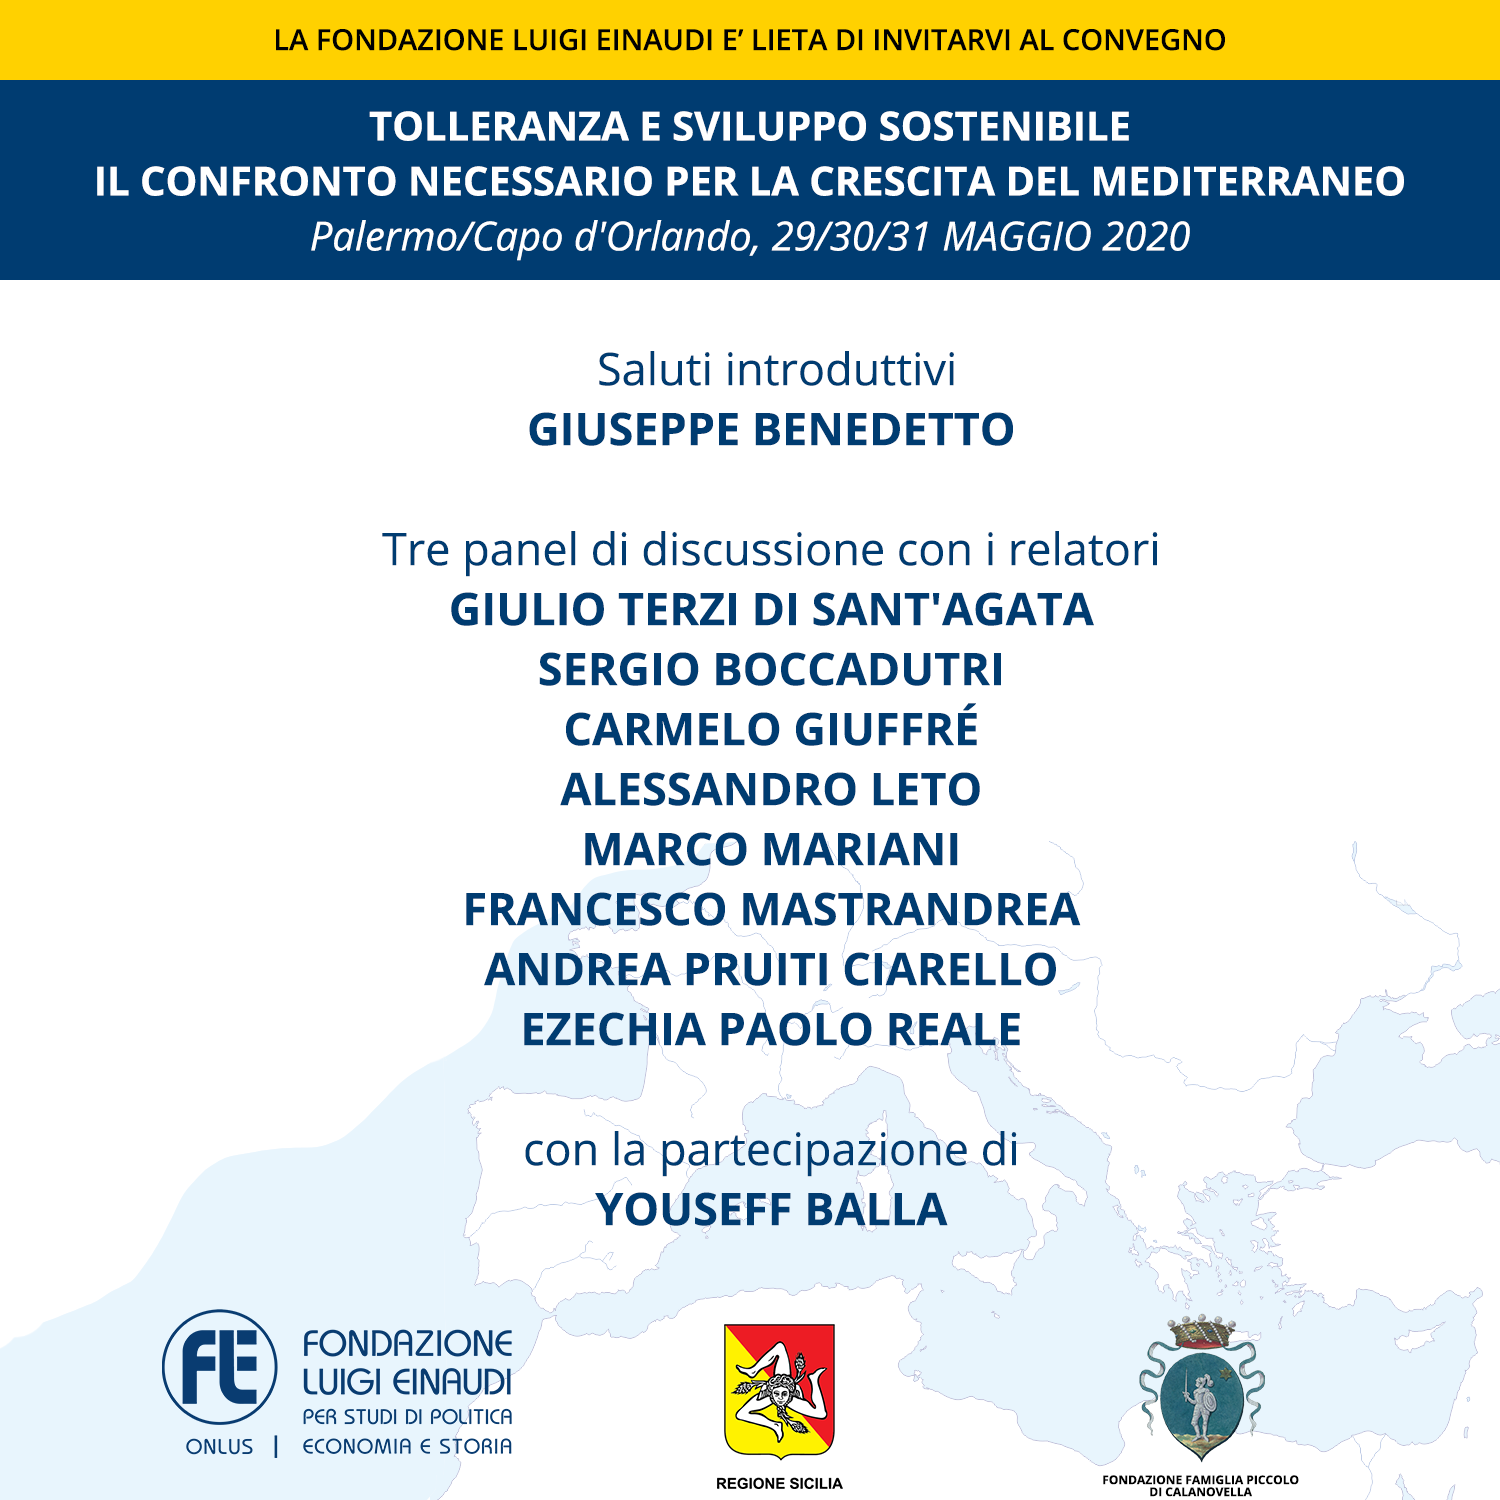 Sustainable development and tolerance: necessary comparison for development in the Mediterranean – EVENT POSTPONED